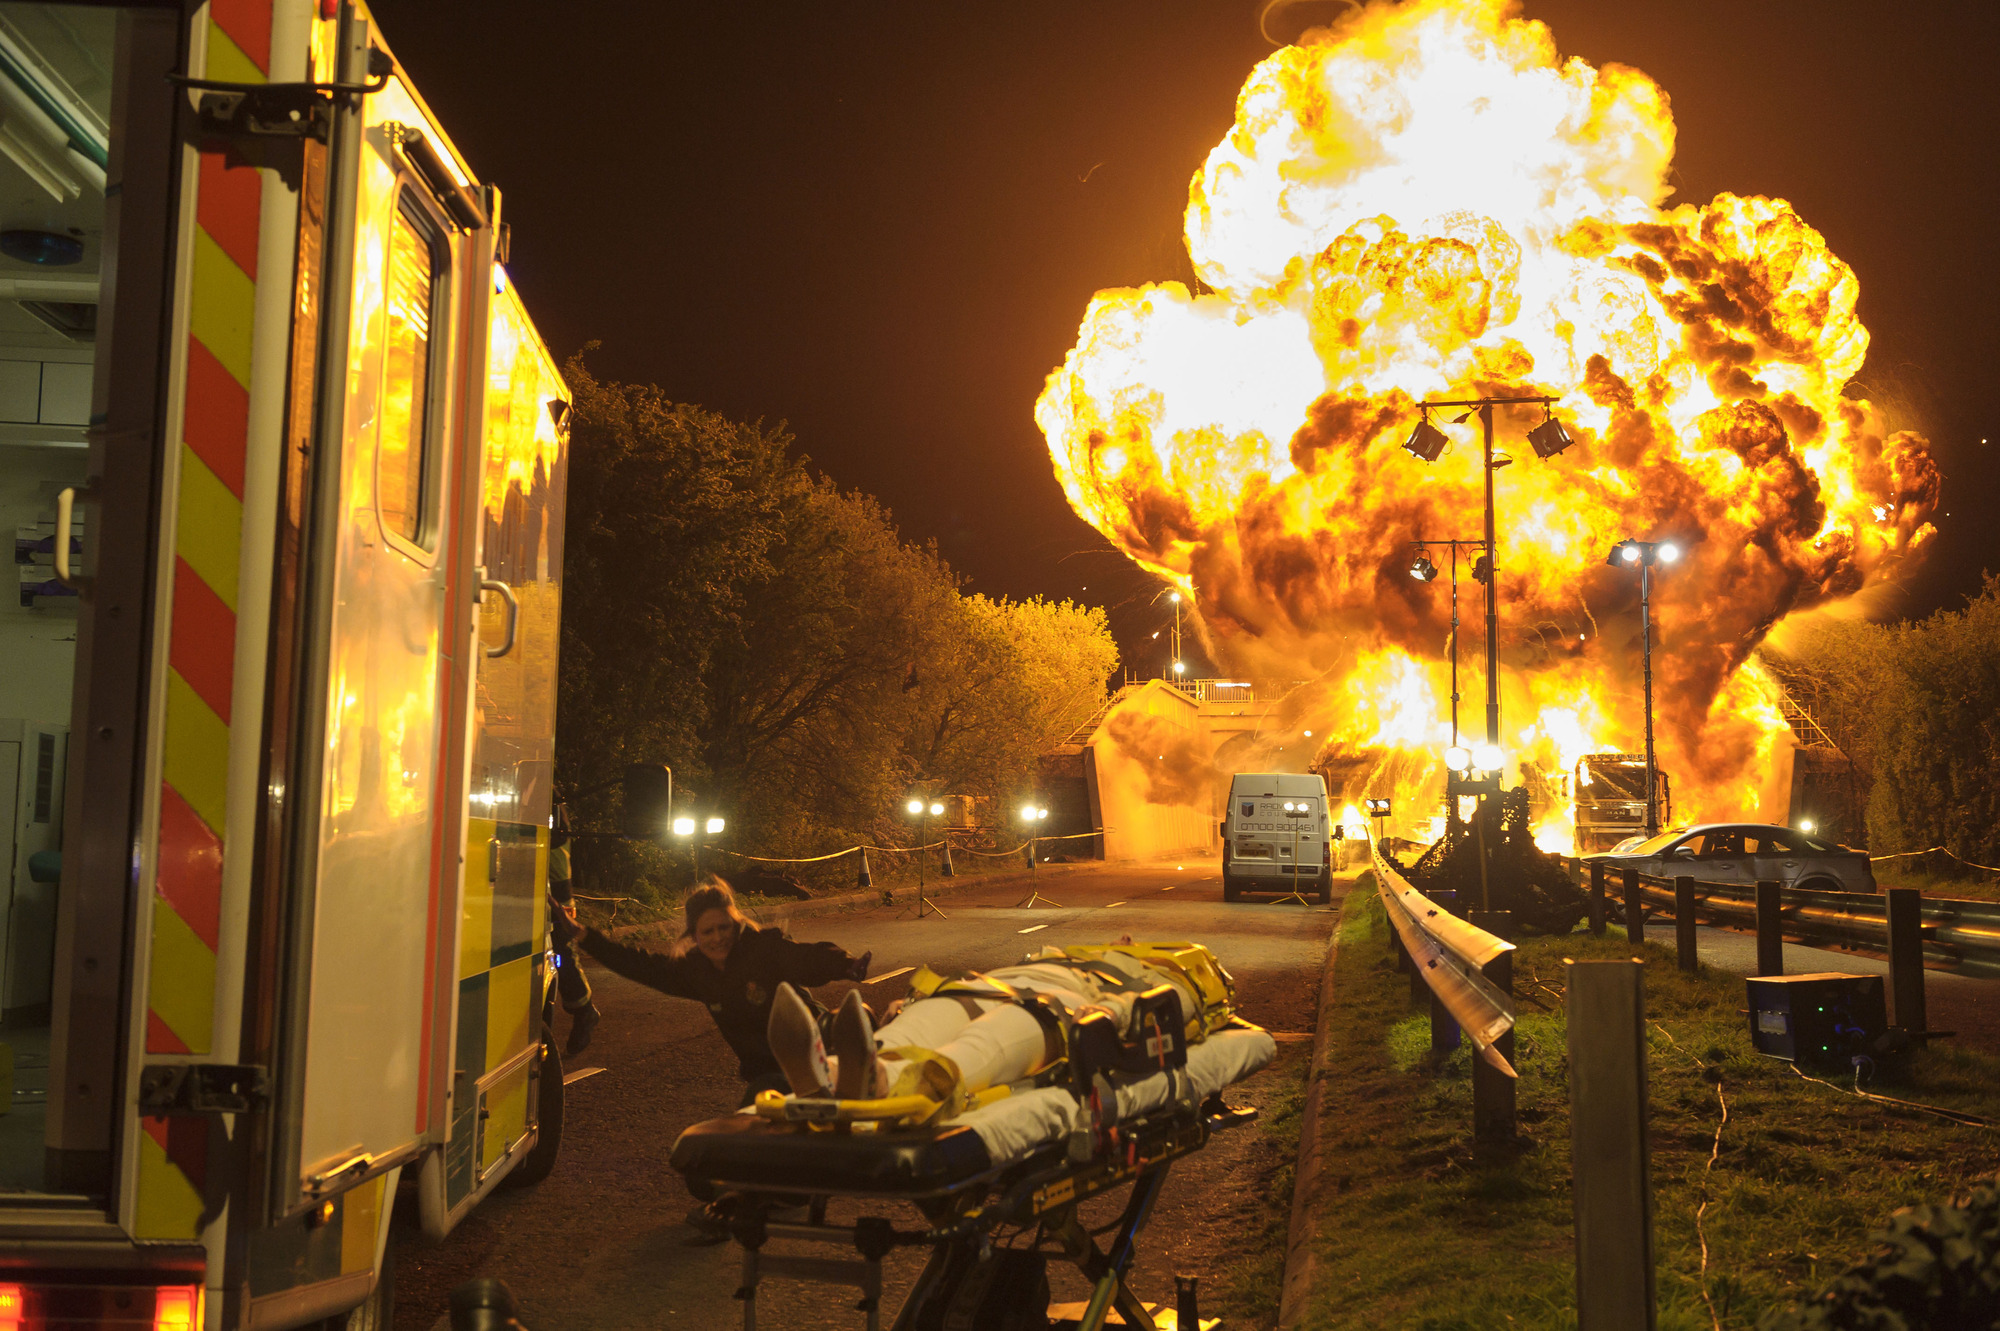 Casualty spoilers: The death in the huge explosion is confirmed